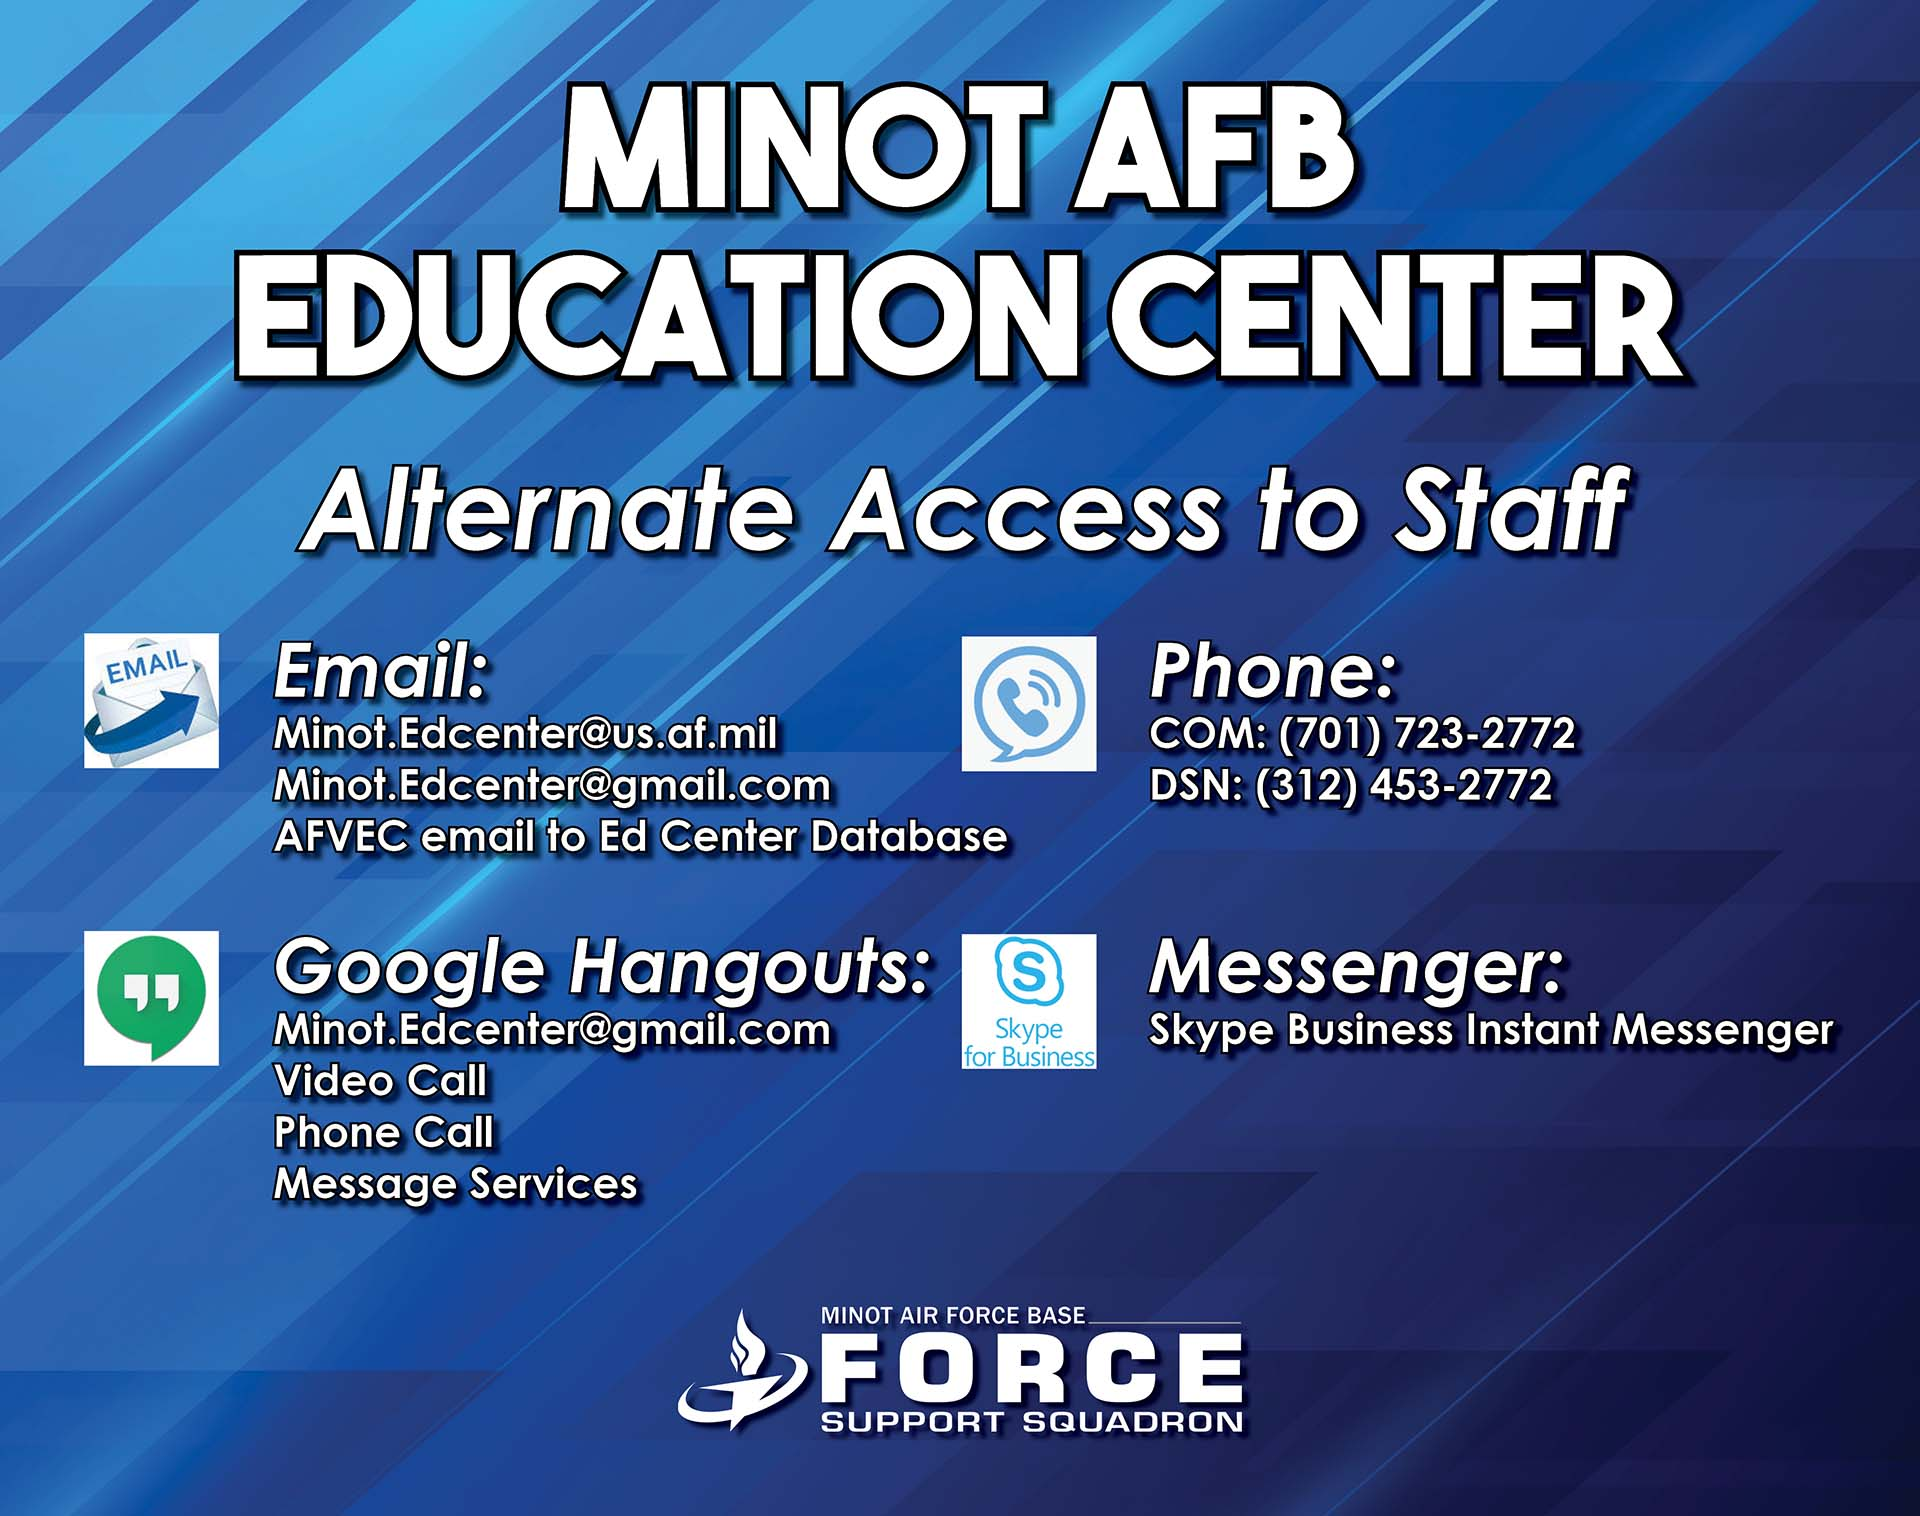 Education Center - Alternate Access to Staff